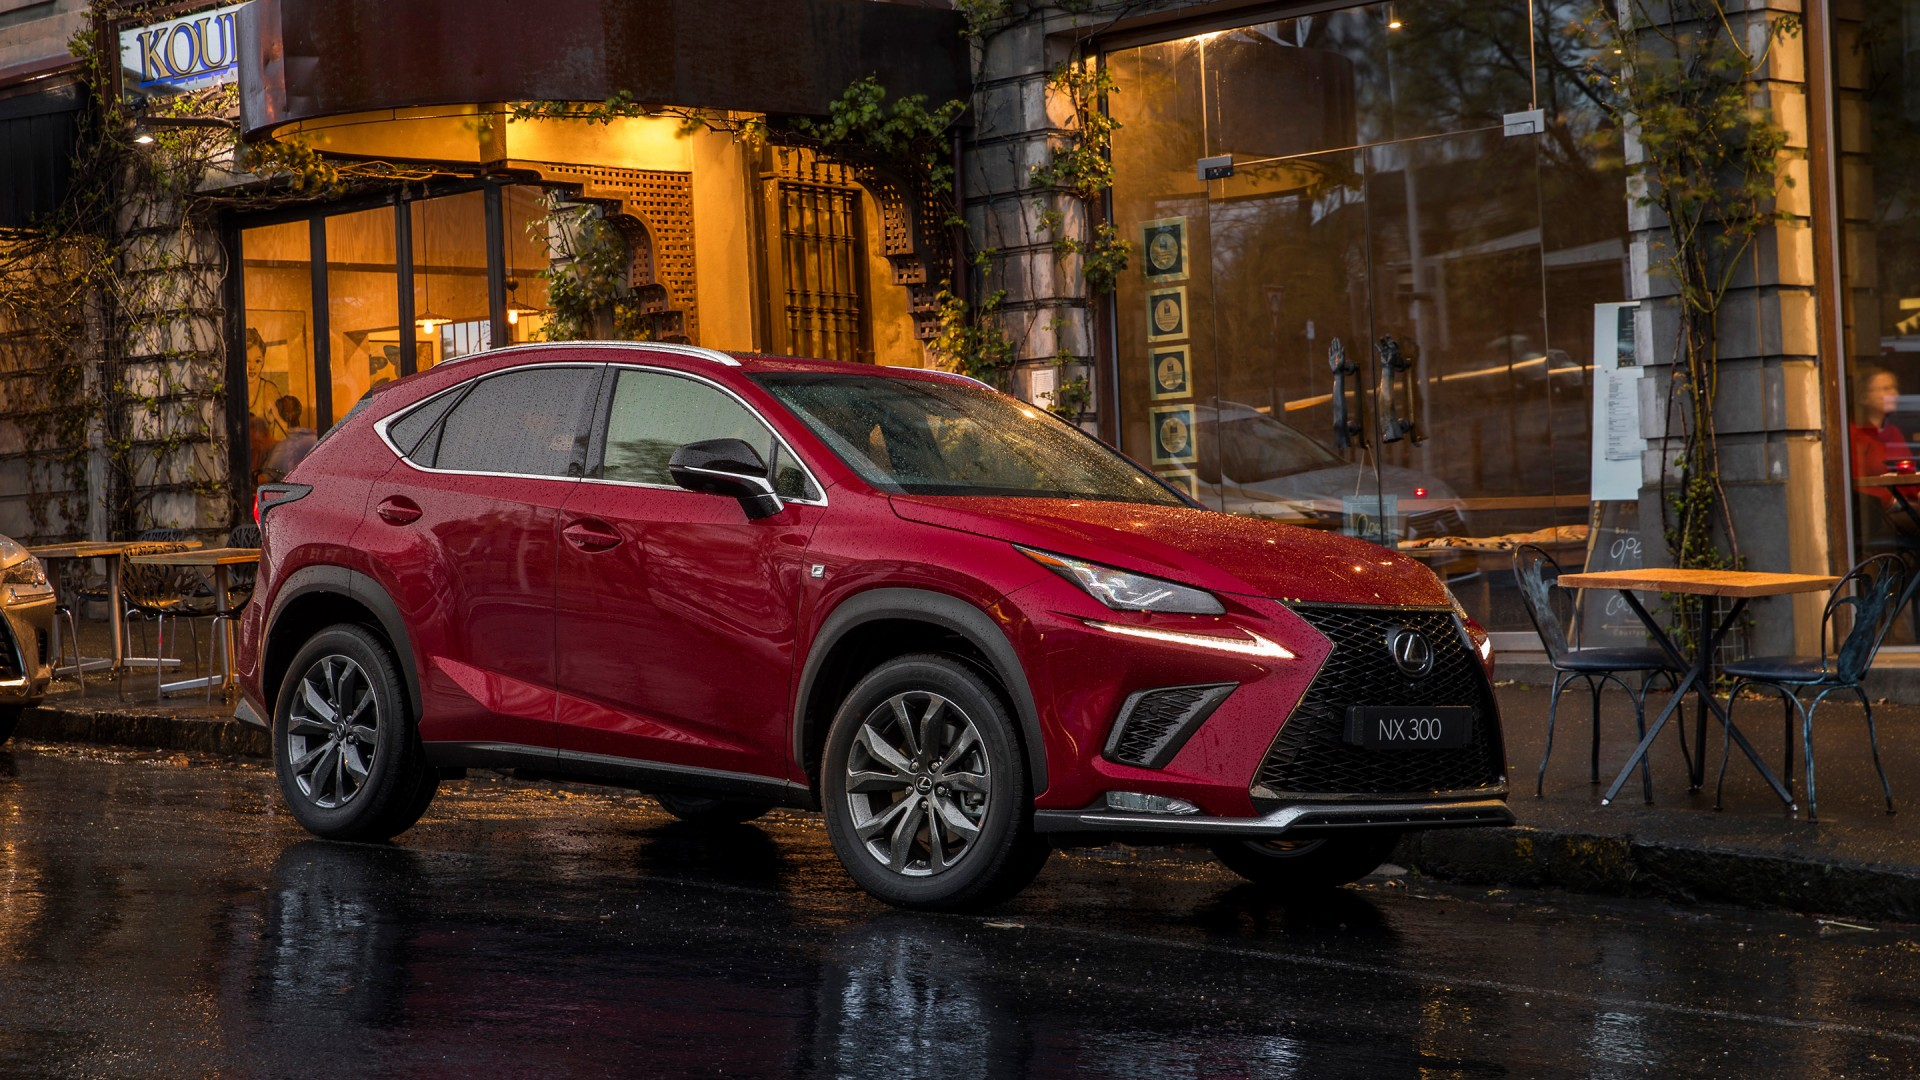 2018 Lexus NX 300 F Sport Wallpaper | HD Car Wallpapers ...